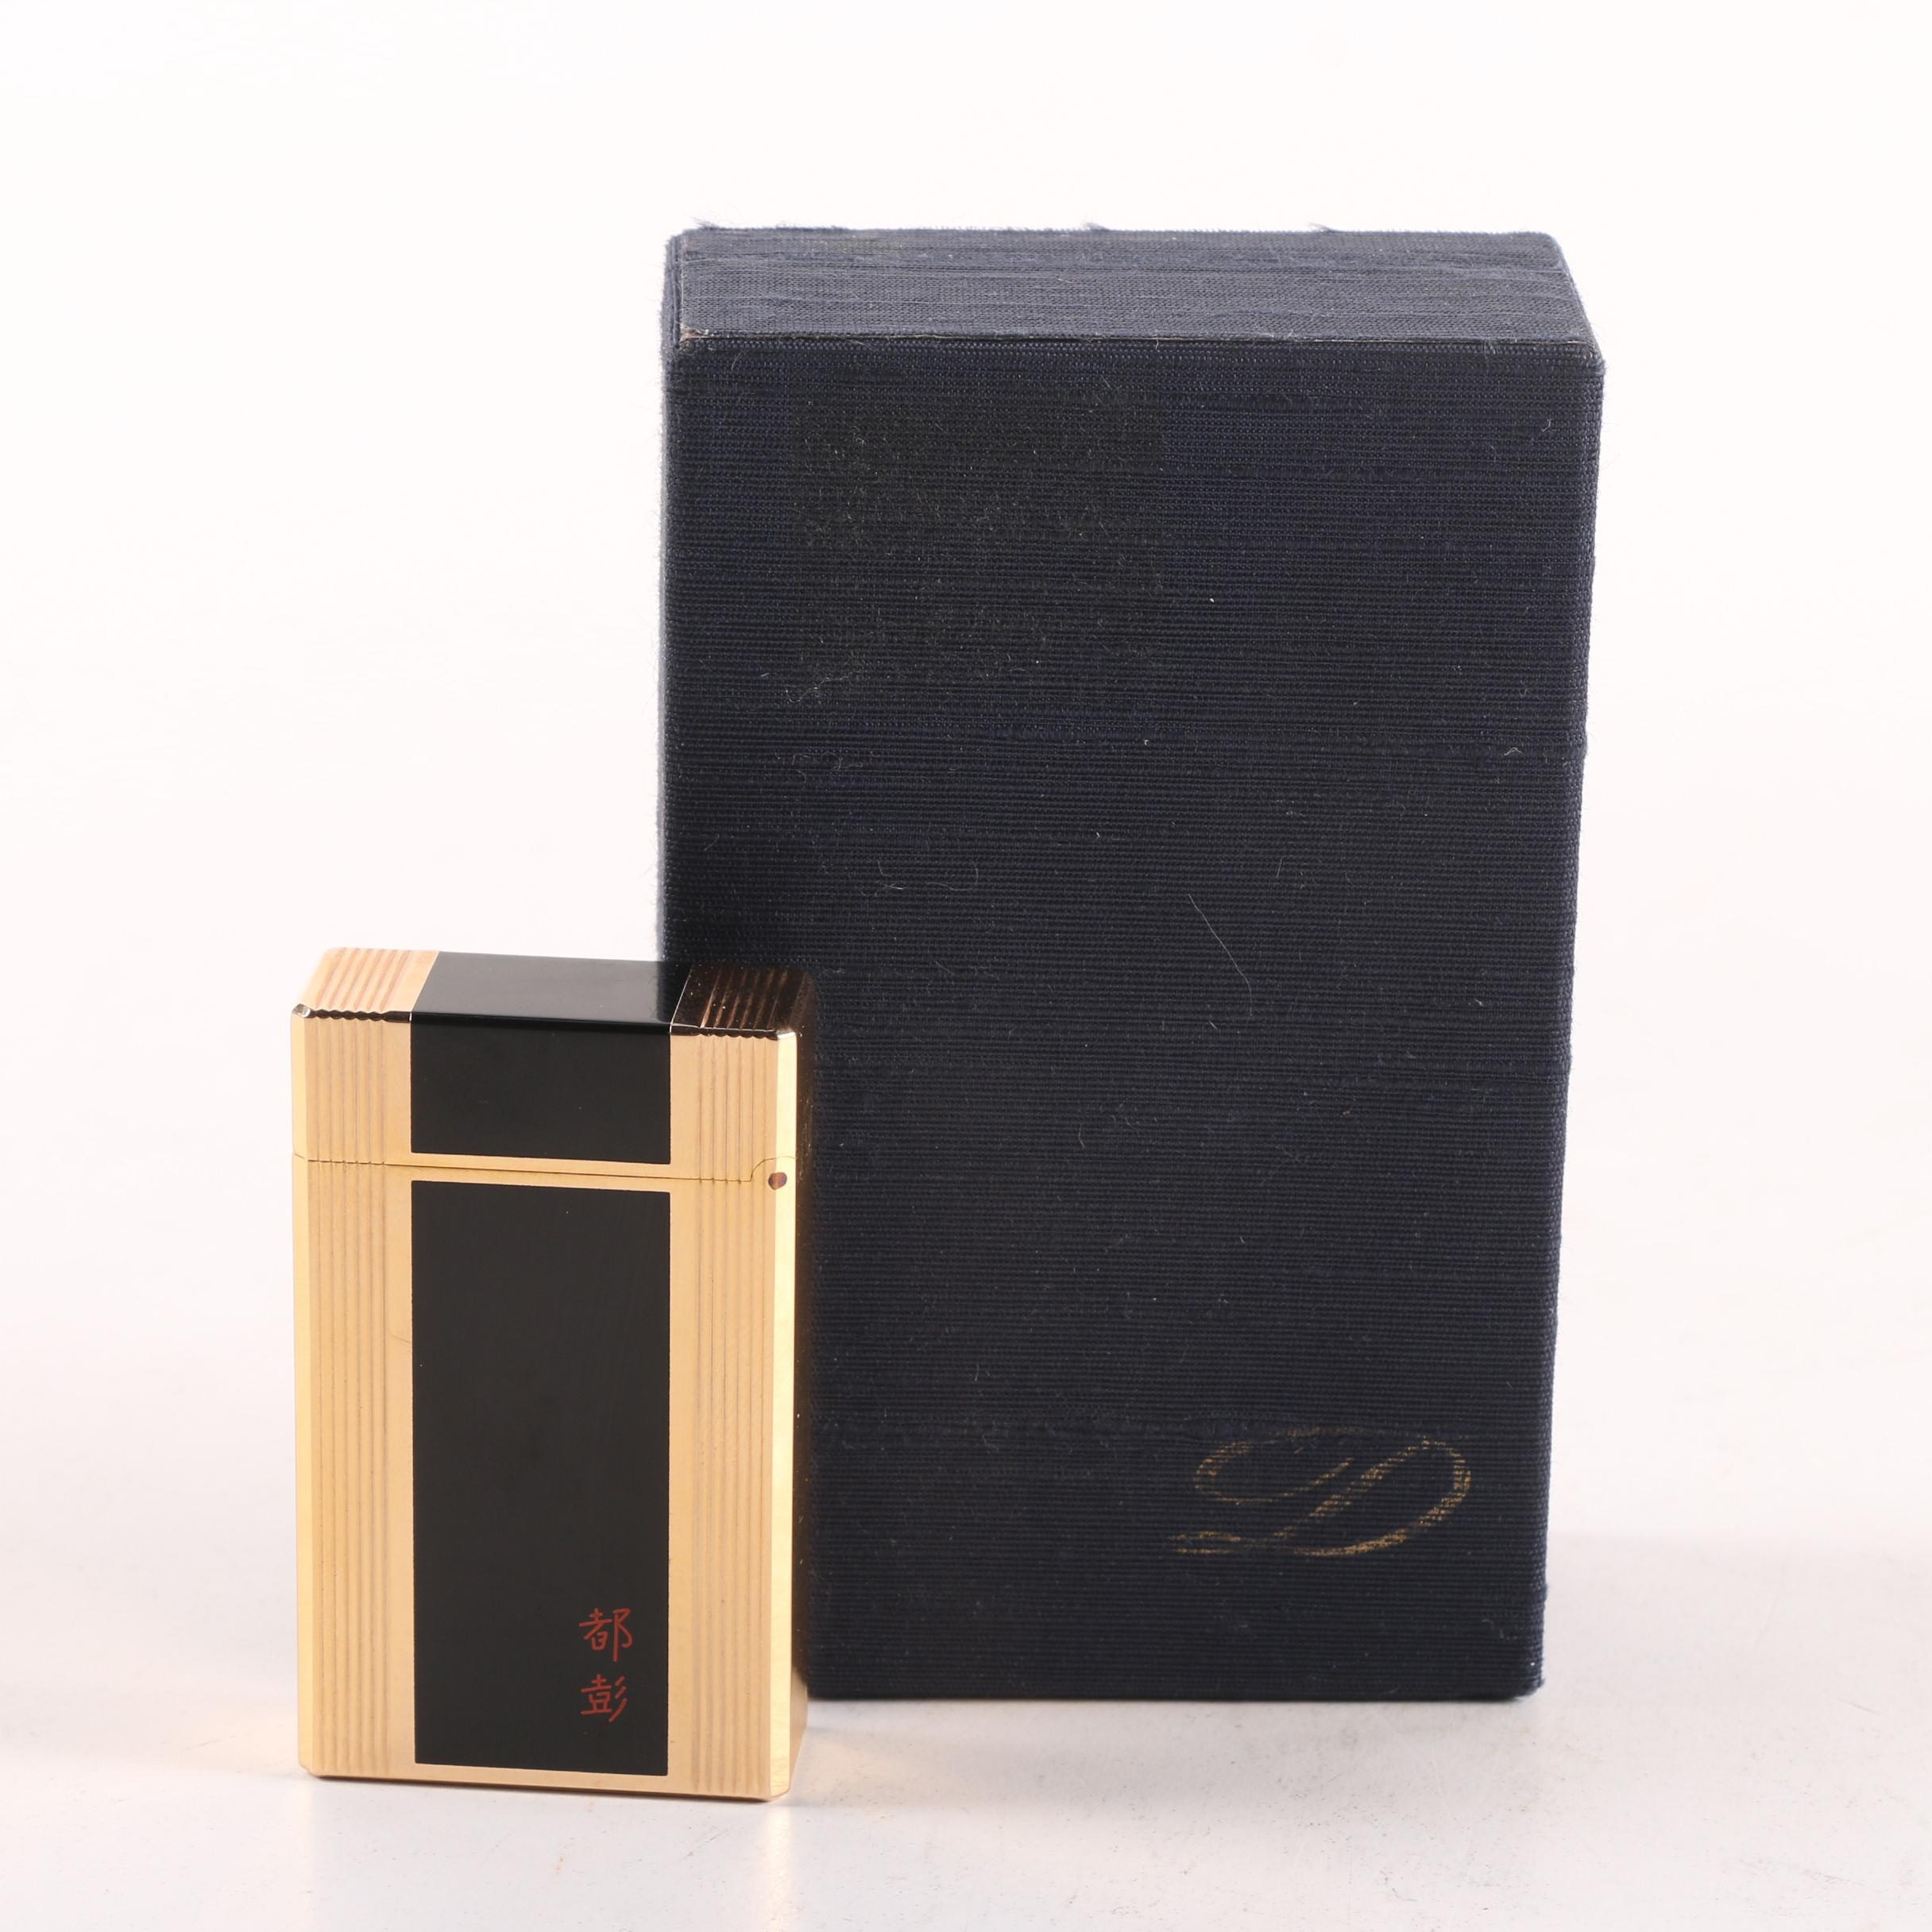 S. T. Dupont Chinese Lacquer Lighter in Original Box